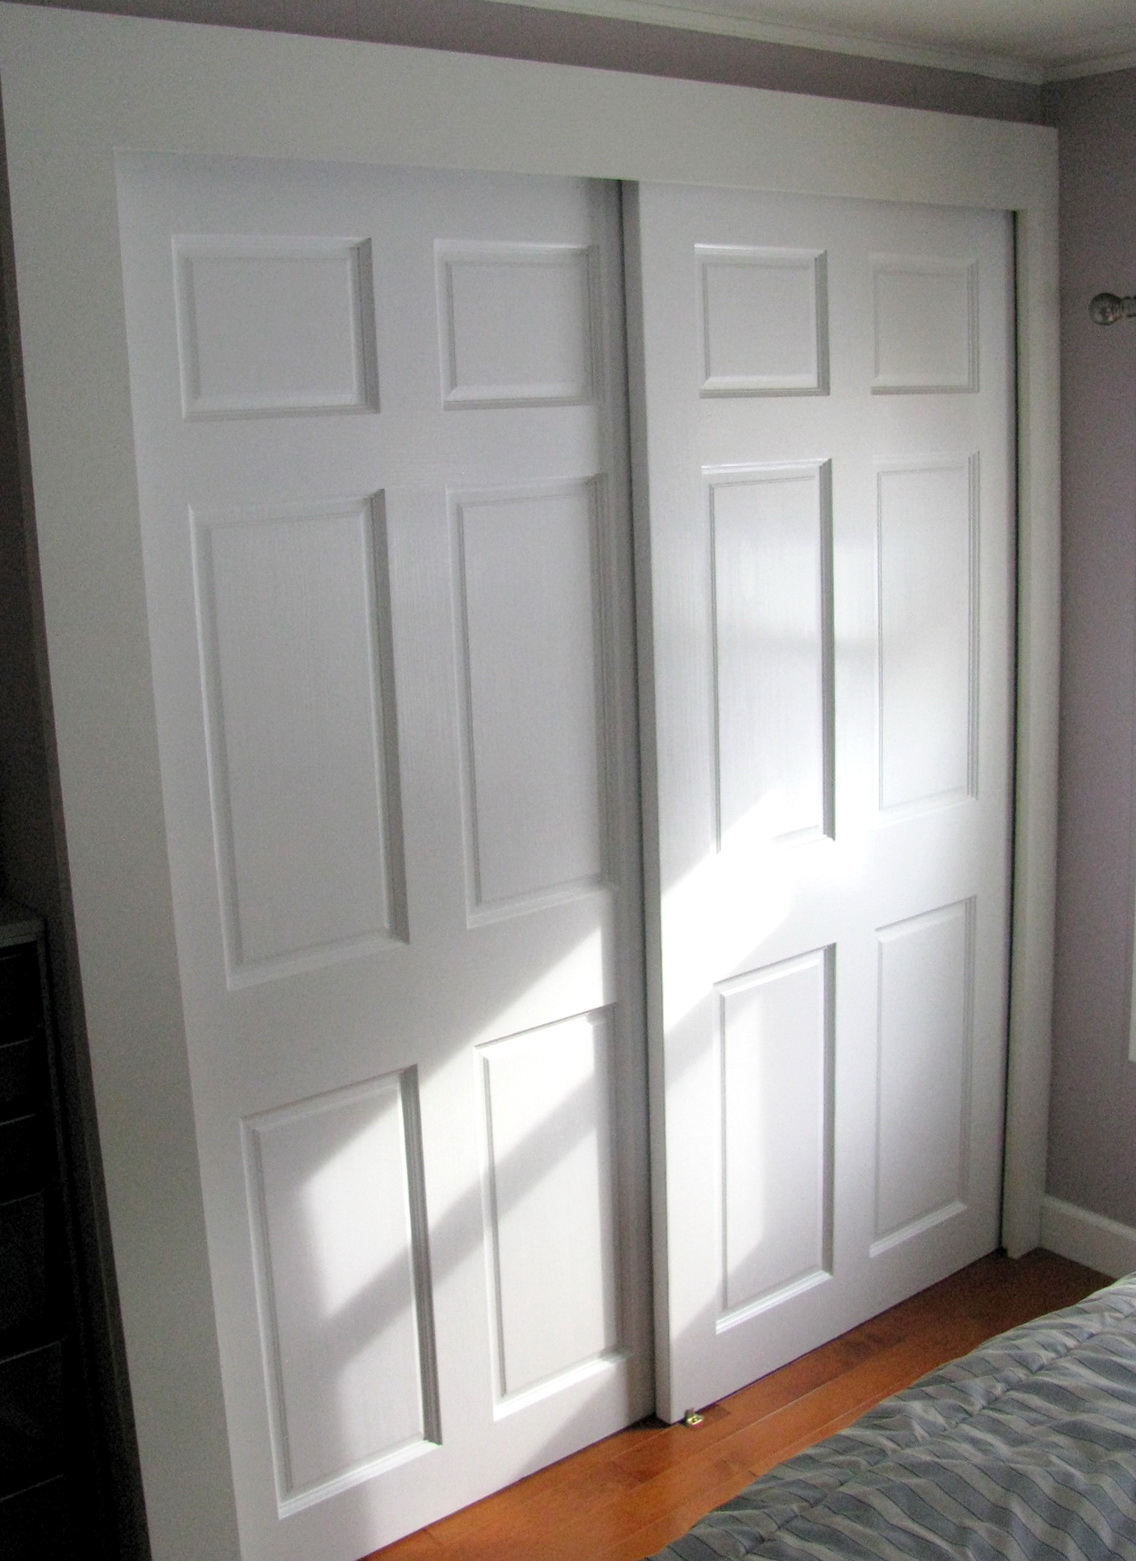 Bypass Closet Doors For Bedrooms Home Design Ideas